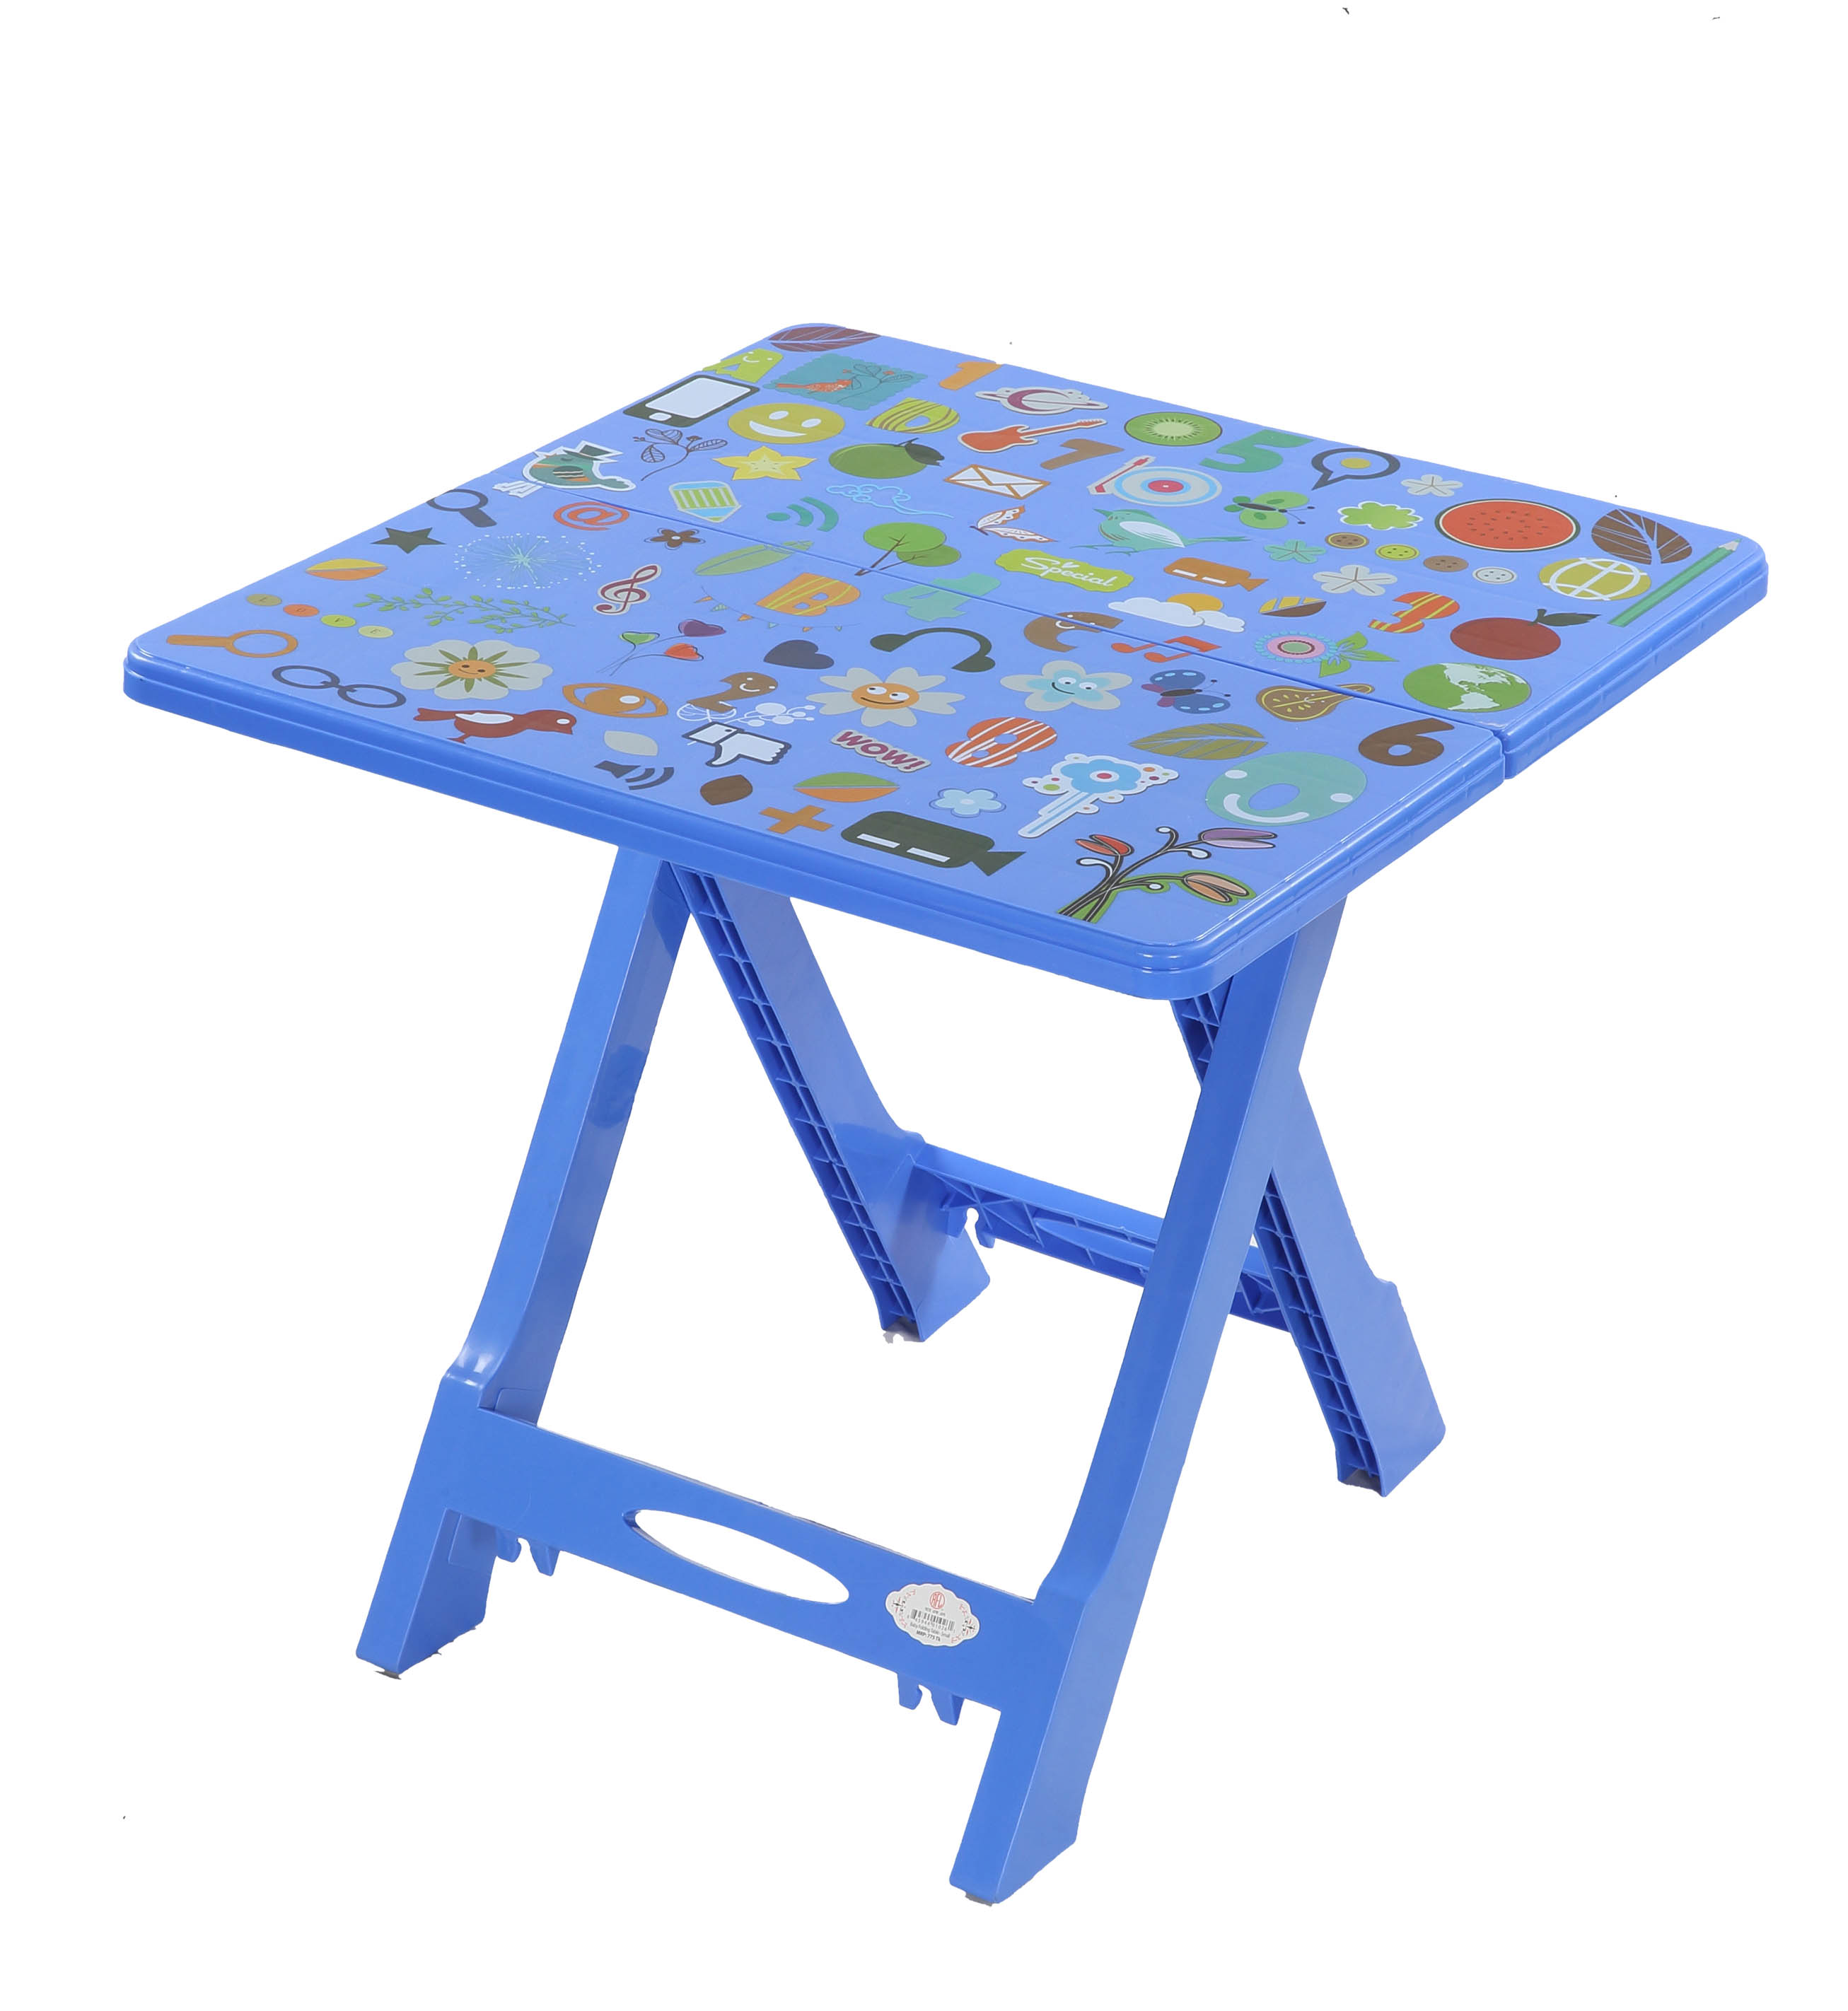 Baby Folding Table Printed Music-SM Blue